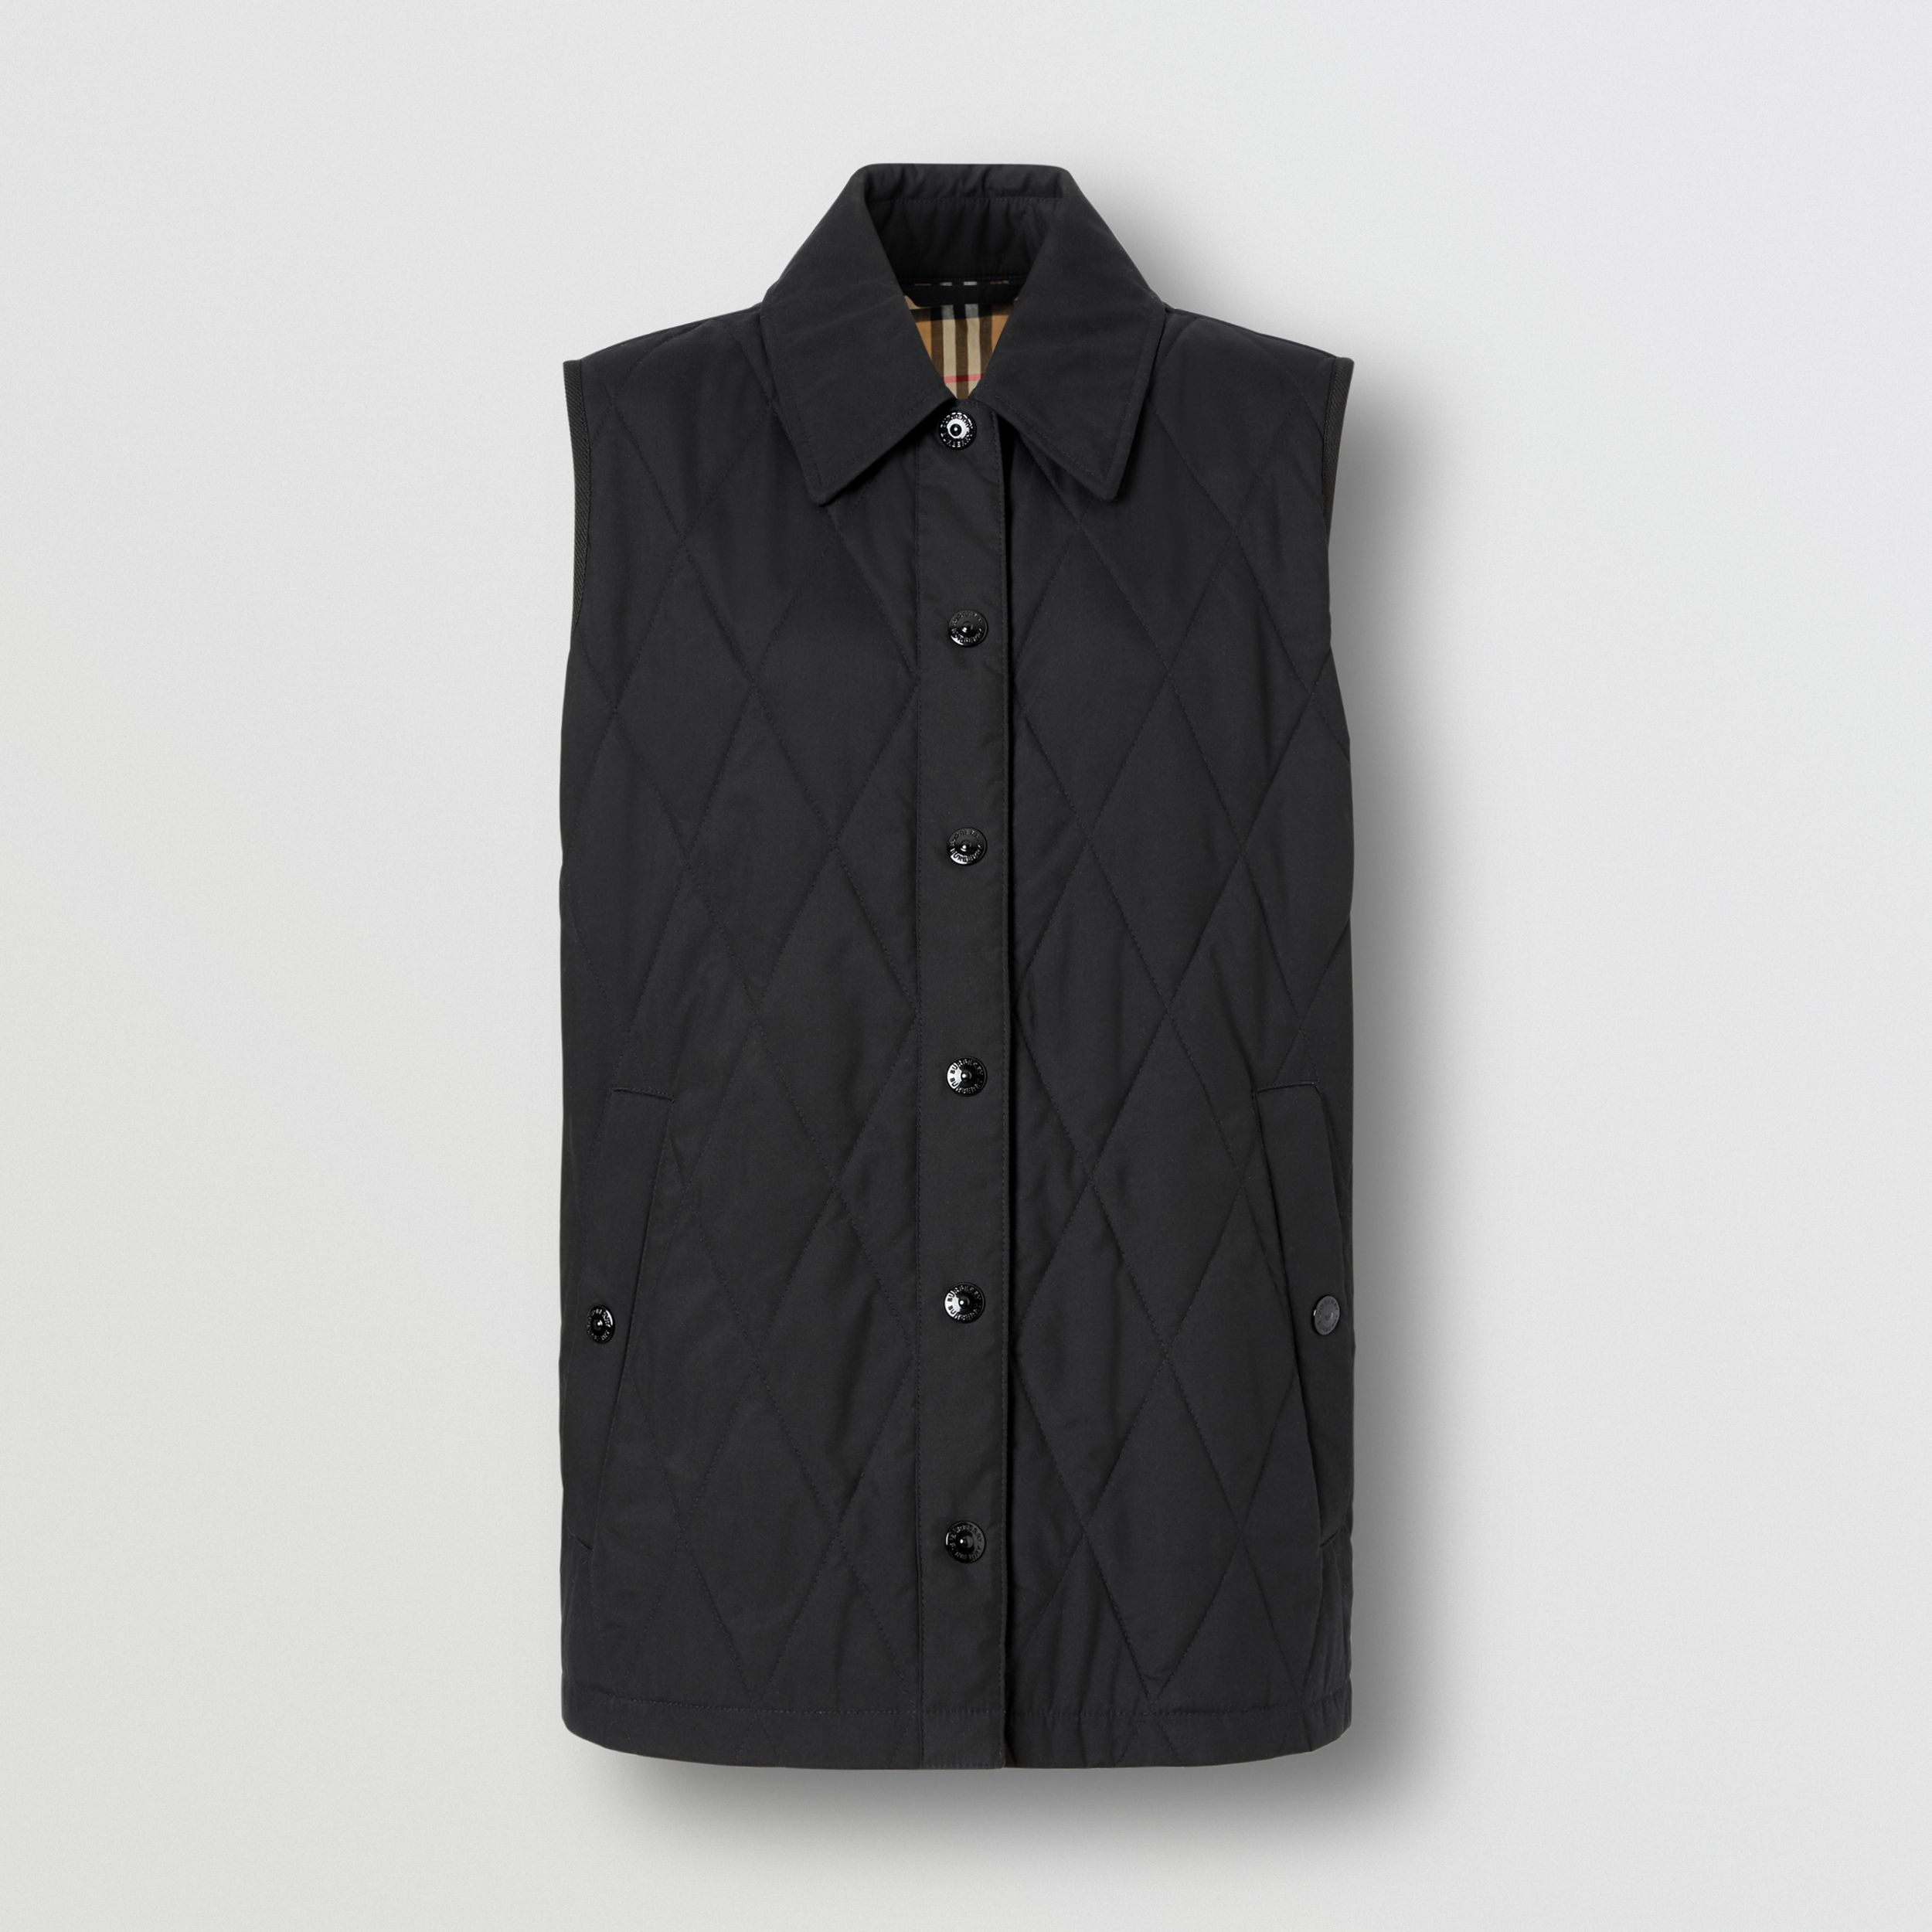 Diamond Quilted Gilet in Black - Women | Burberry - 4